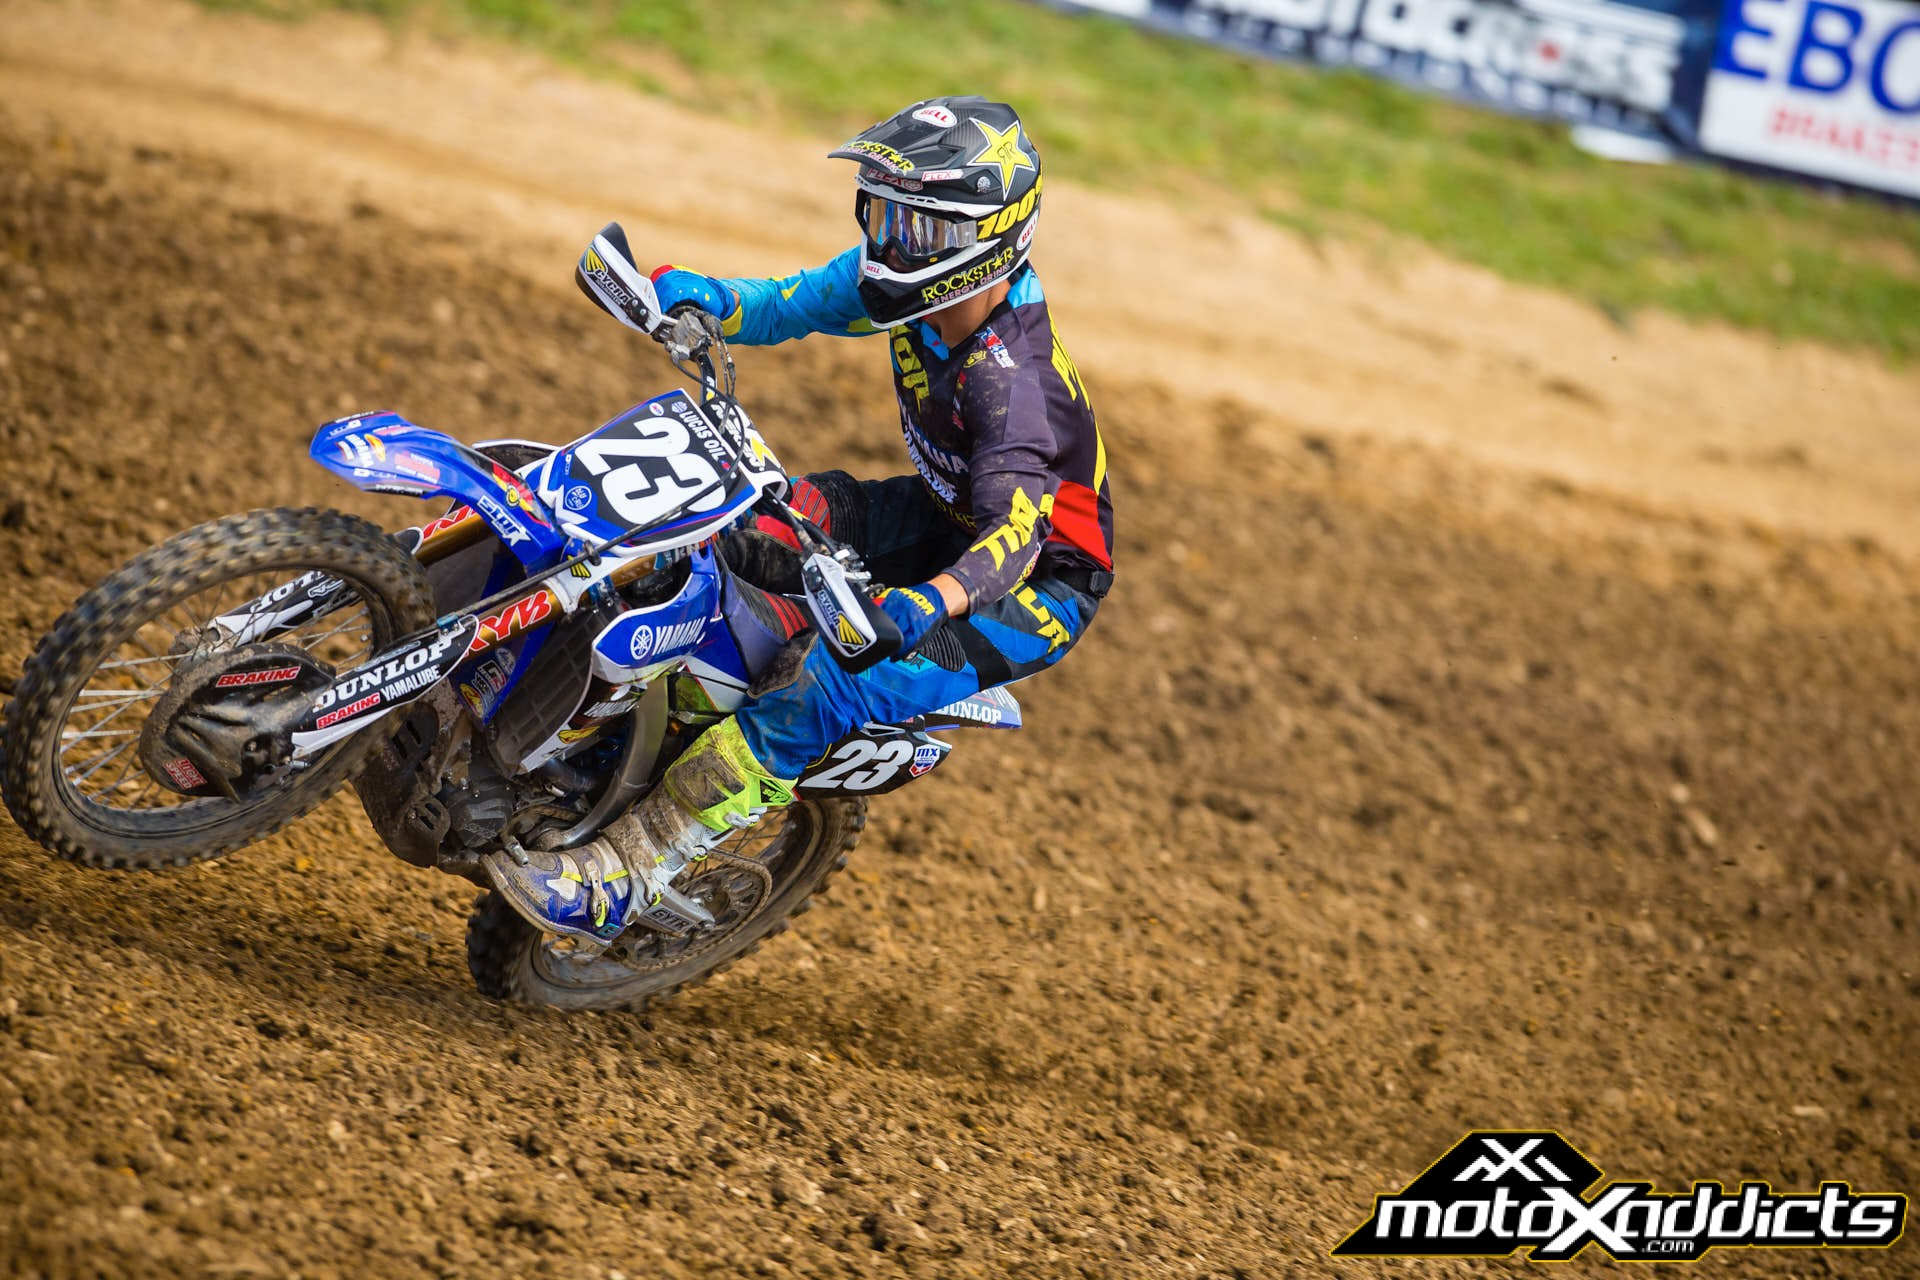 Aaron Plessinger has the speed, but good starts have been few and far between.